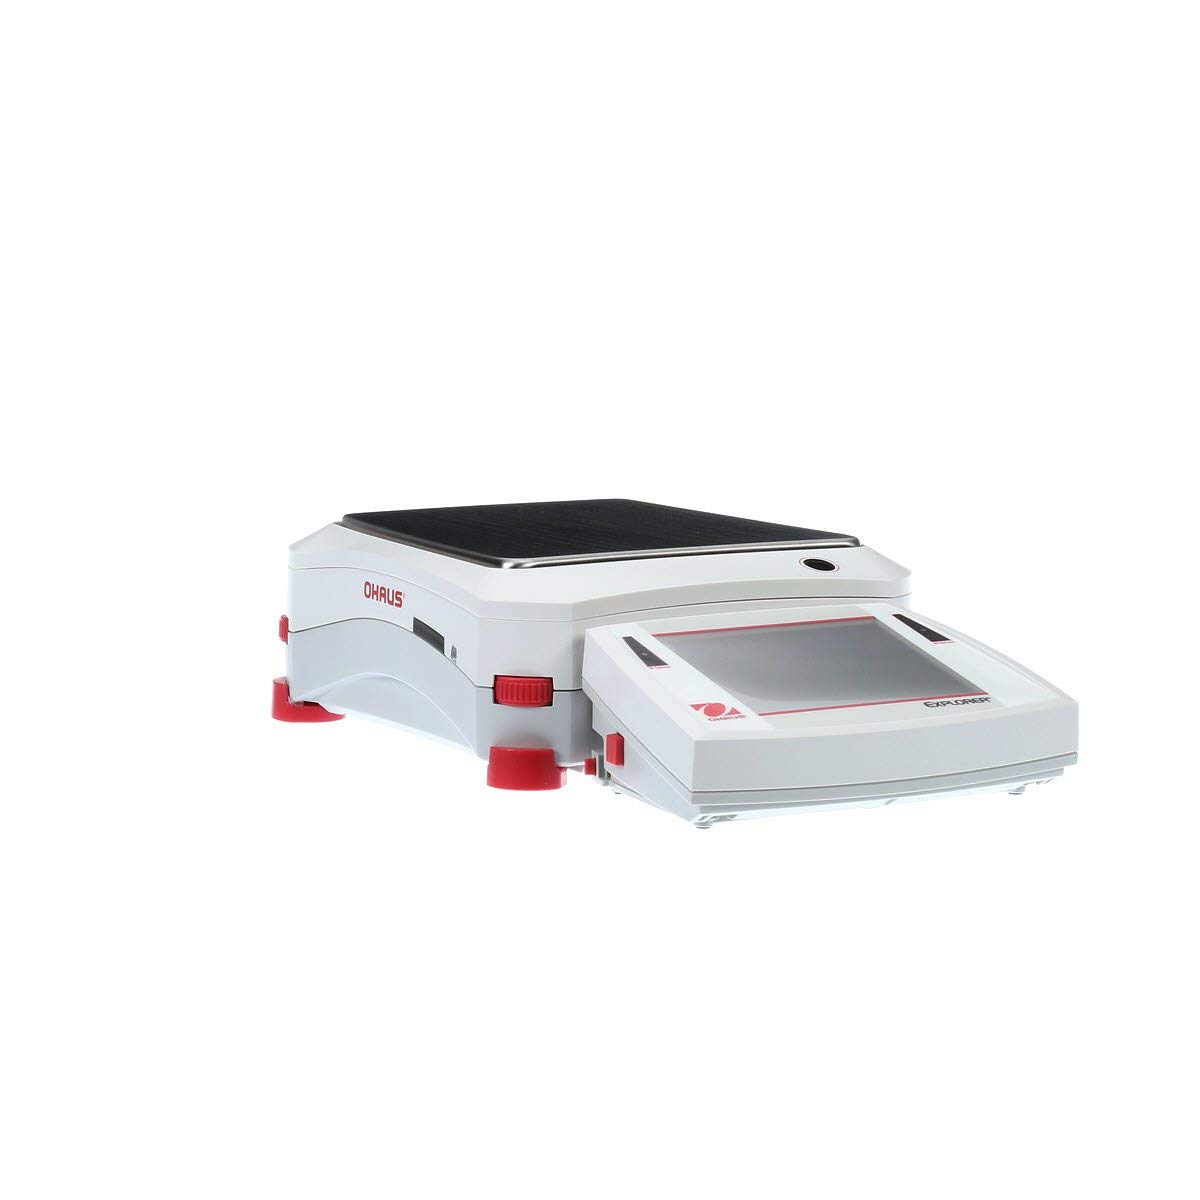 Ohaus Explorer Precision EX10202, Capacity 10200g x 0.1g, Digital Precision Scale, Stainless Steel Pan Precision Lab Scale for Calibration, Pharmacy, Industrial, Chemically Use